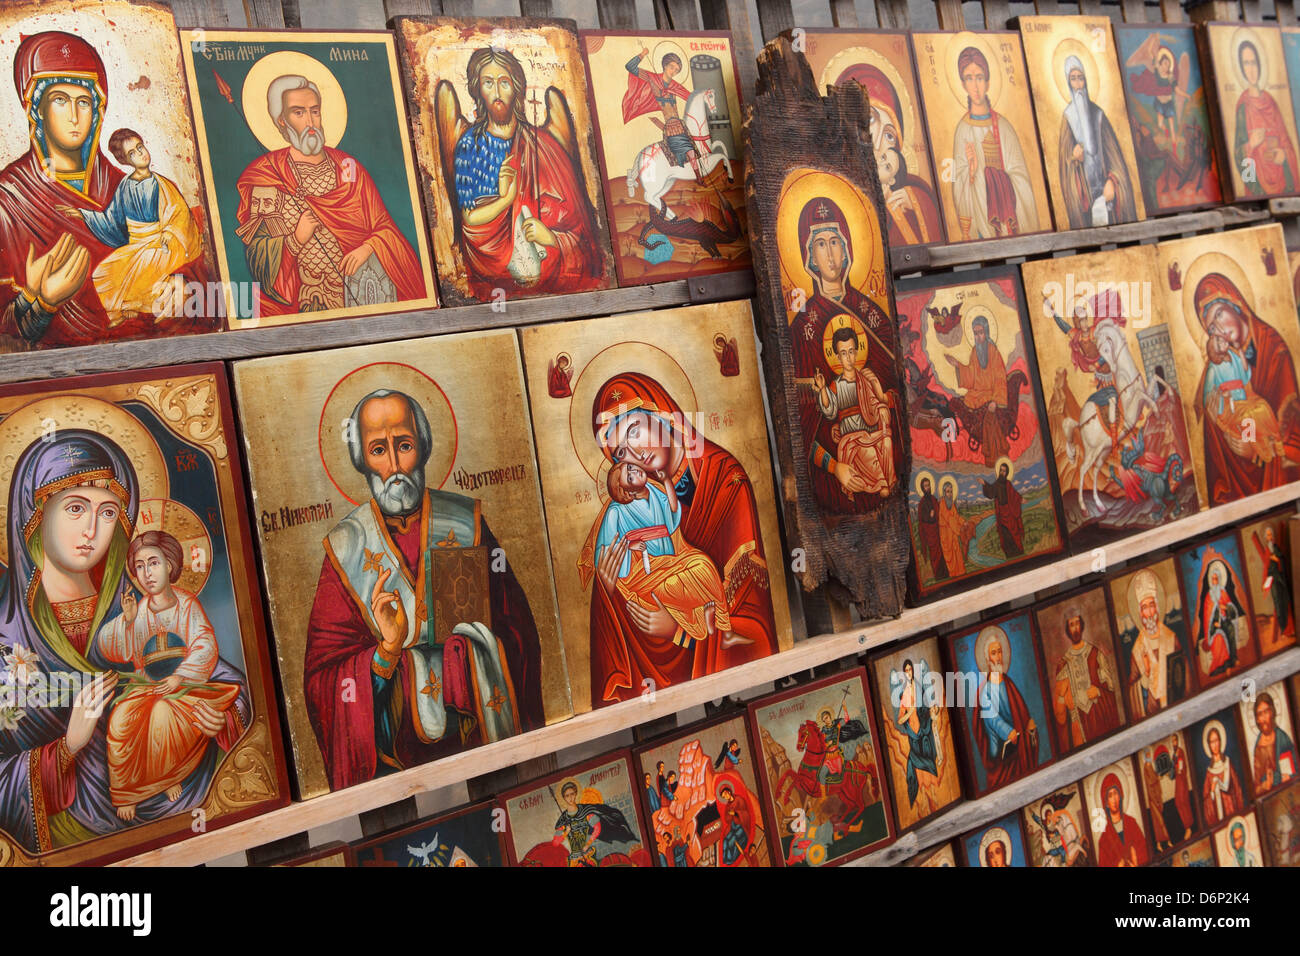 Greek Orthodox icons offered for sale outside the Alexander Nevsky Cathedral, Sofia, Bulgaria, Europe - Stock Image